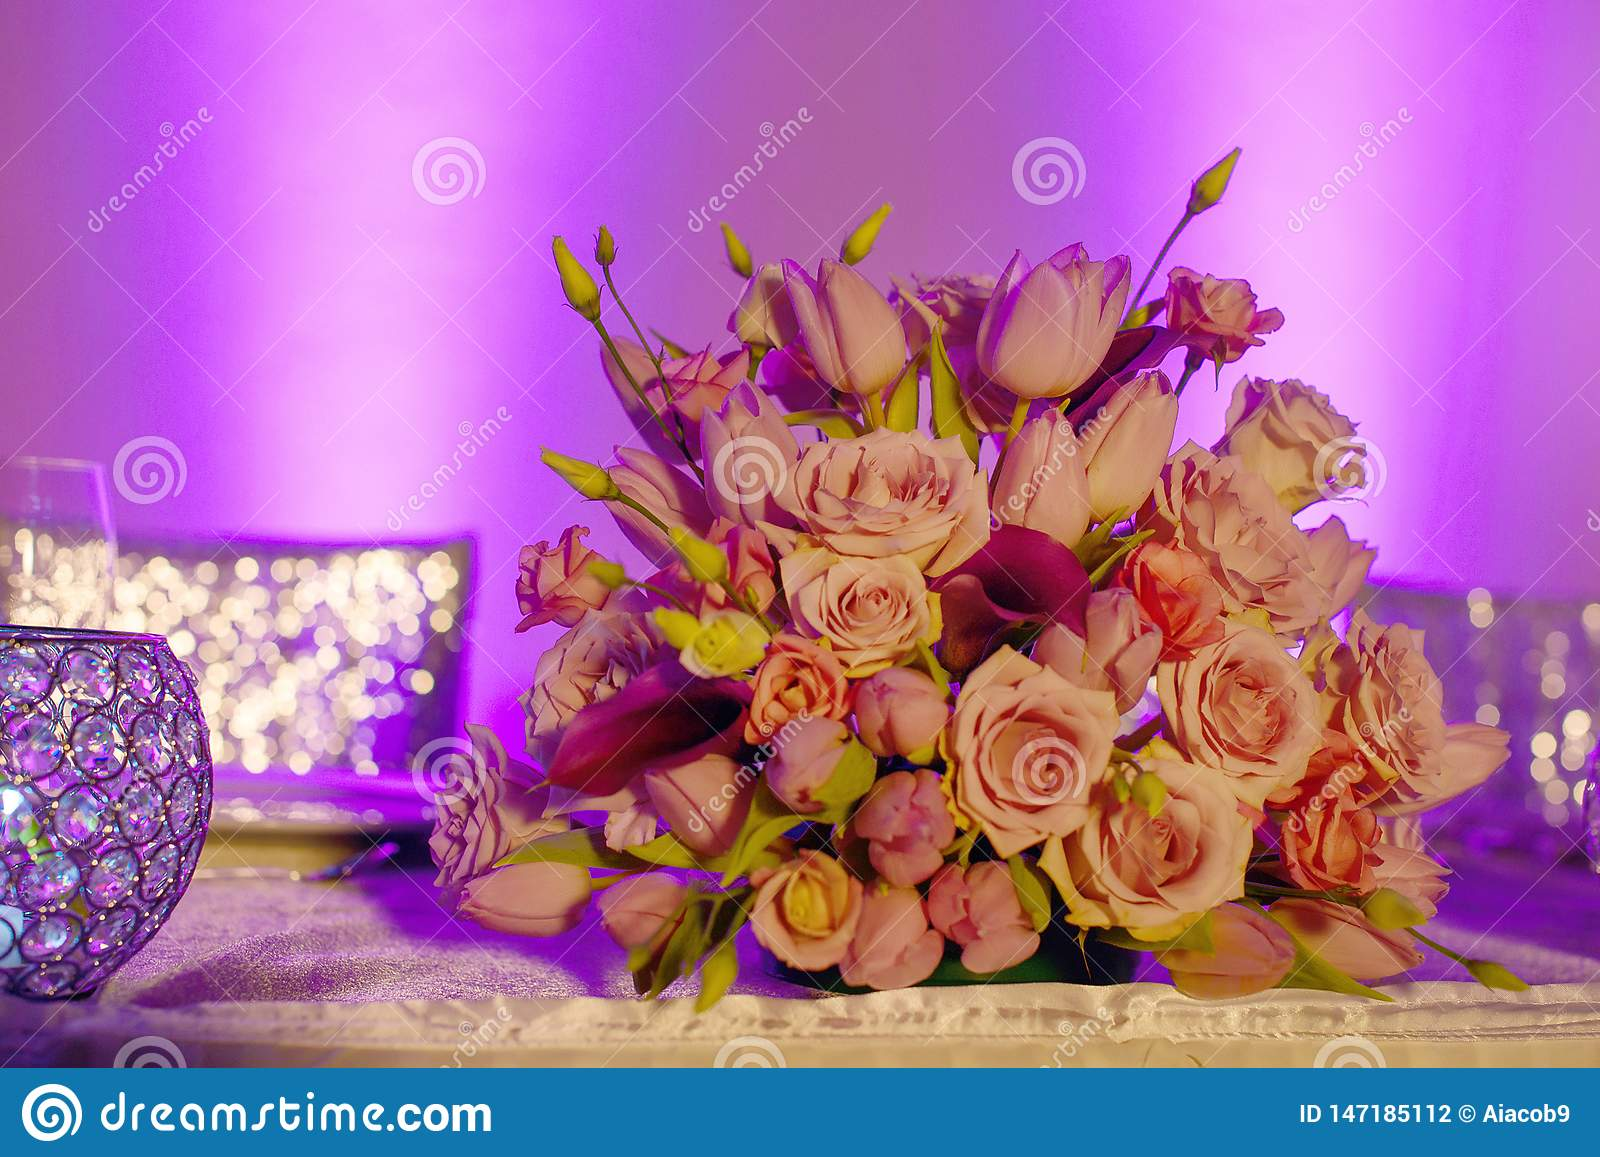 Classy Floral Arrangement In A Pastel Pink Hues Bouquet Featuring ...